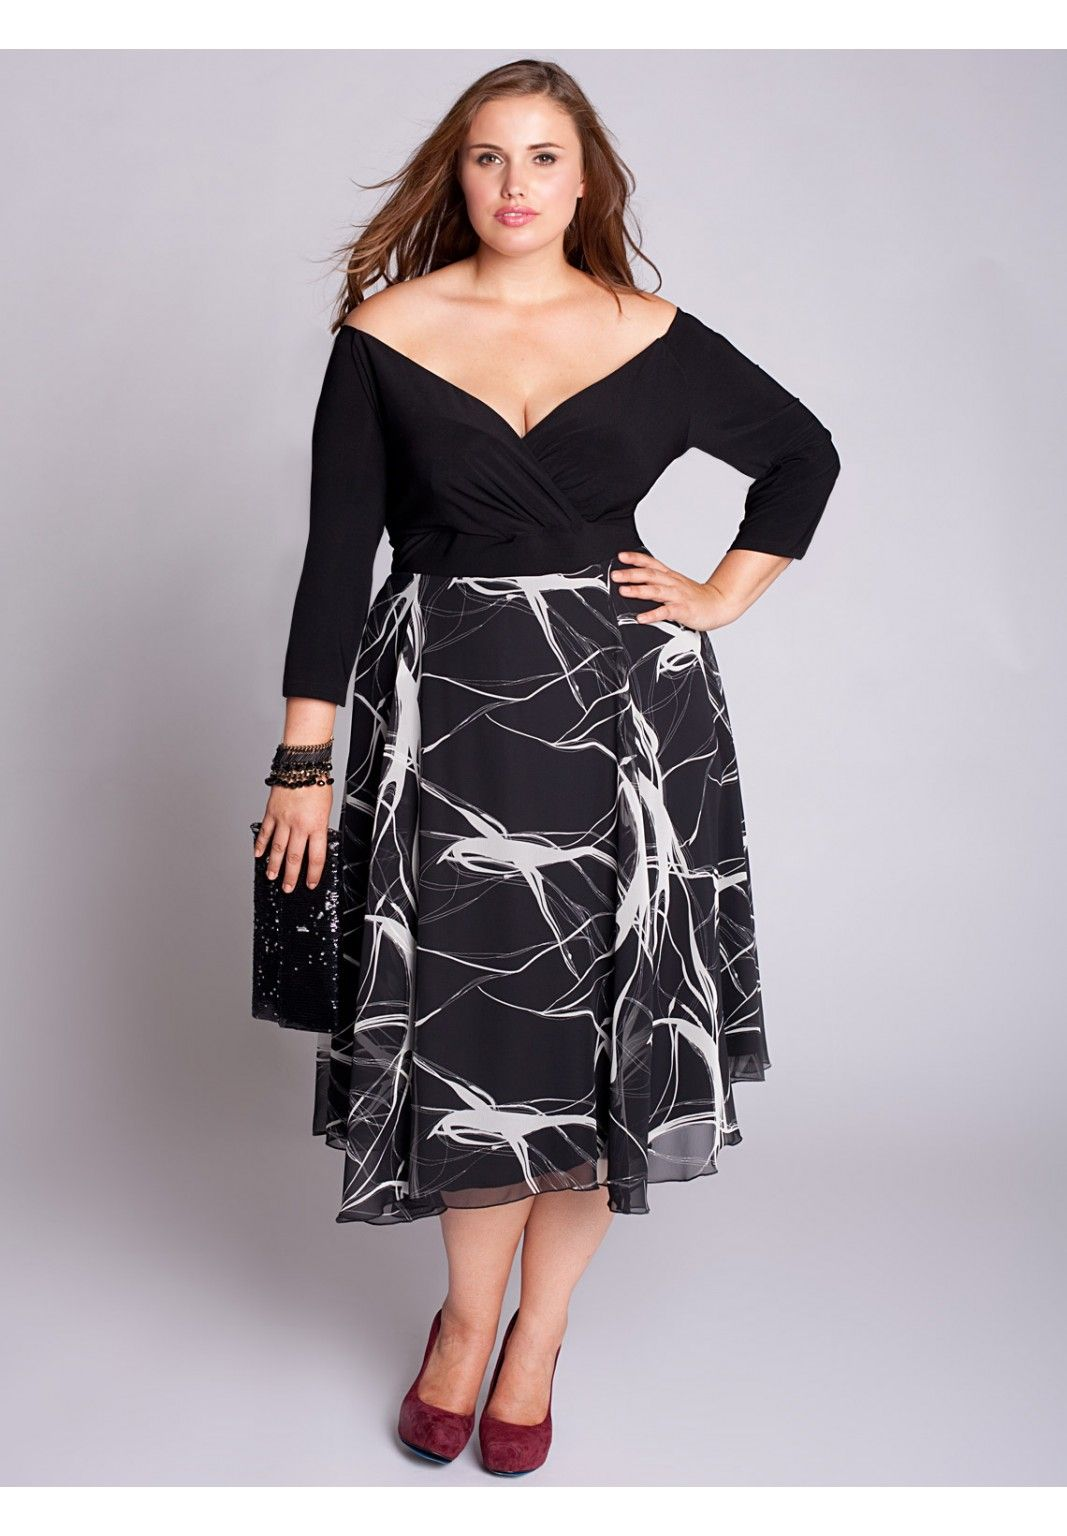 236056722e3 The plus size Kelly Dress from Igigi is perfect for dinner during the  holiday season. Its high waist and flared skirt oozes Old Hollywood  glamour